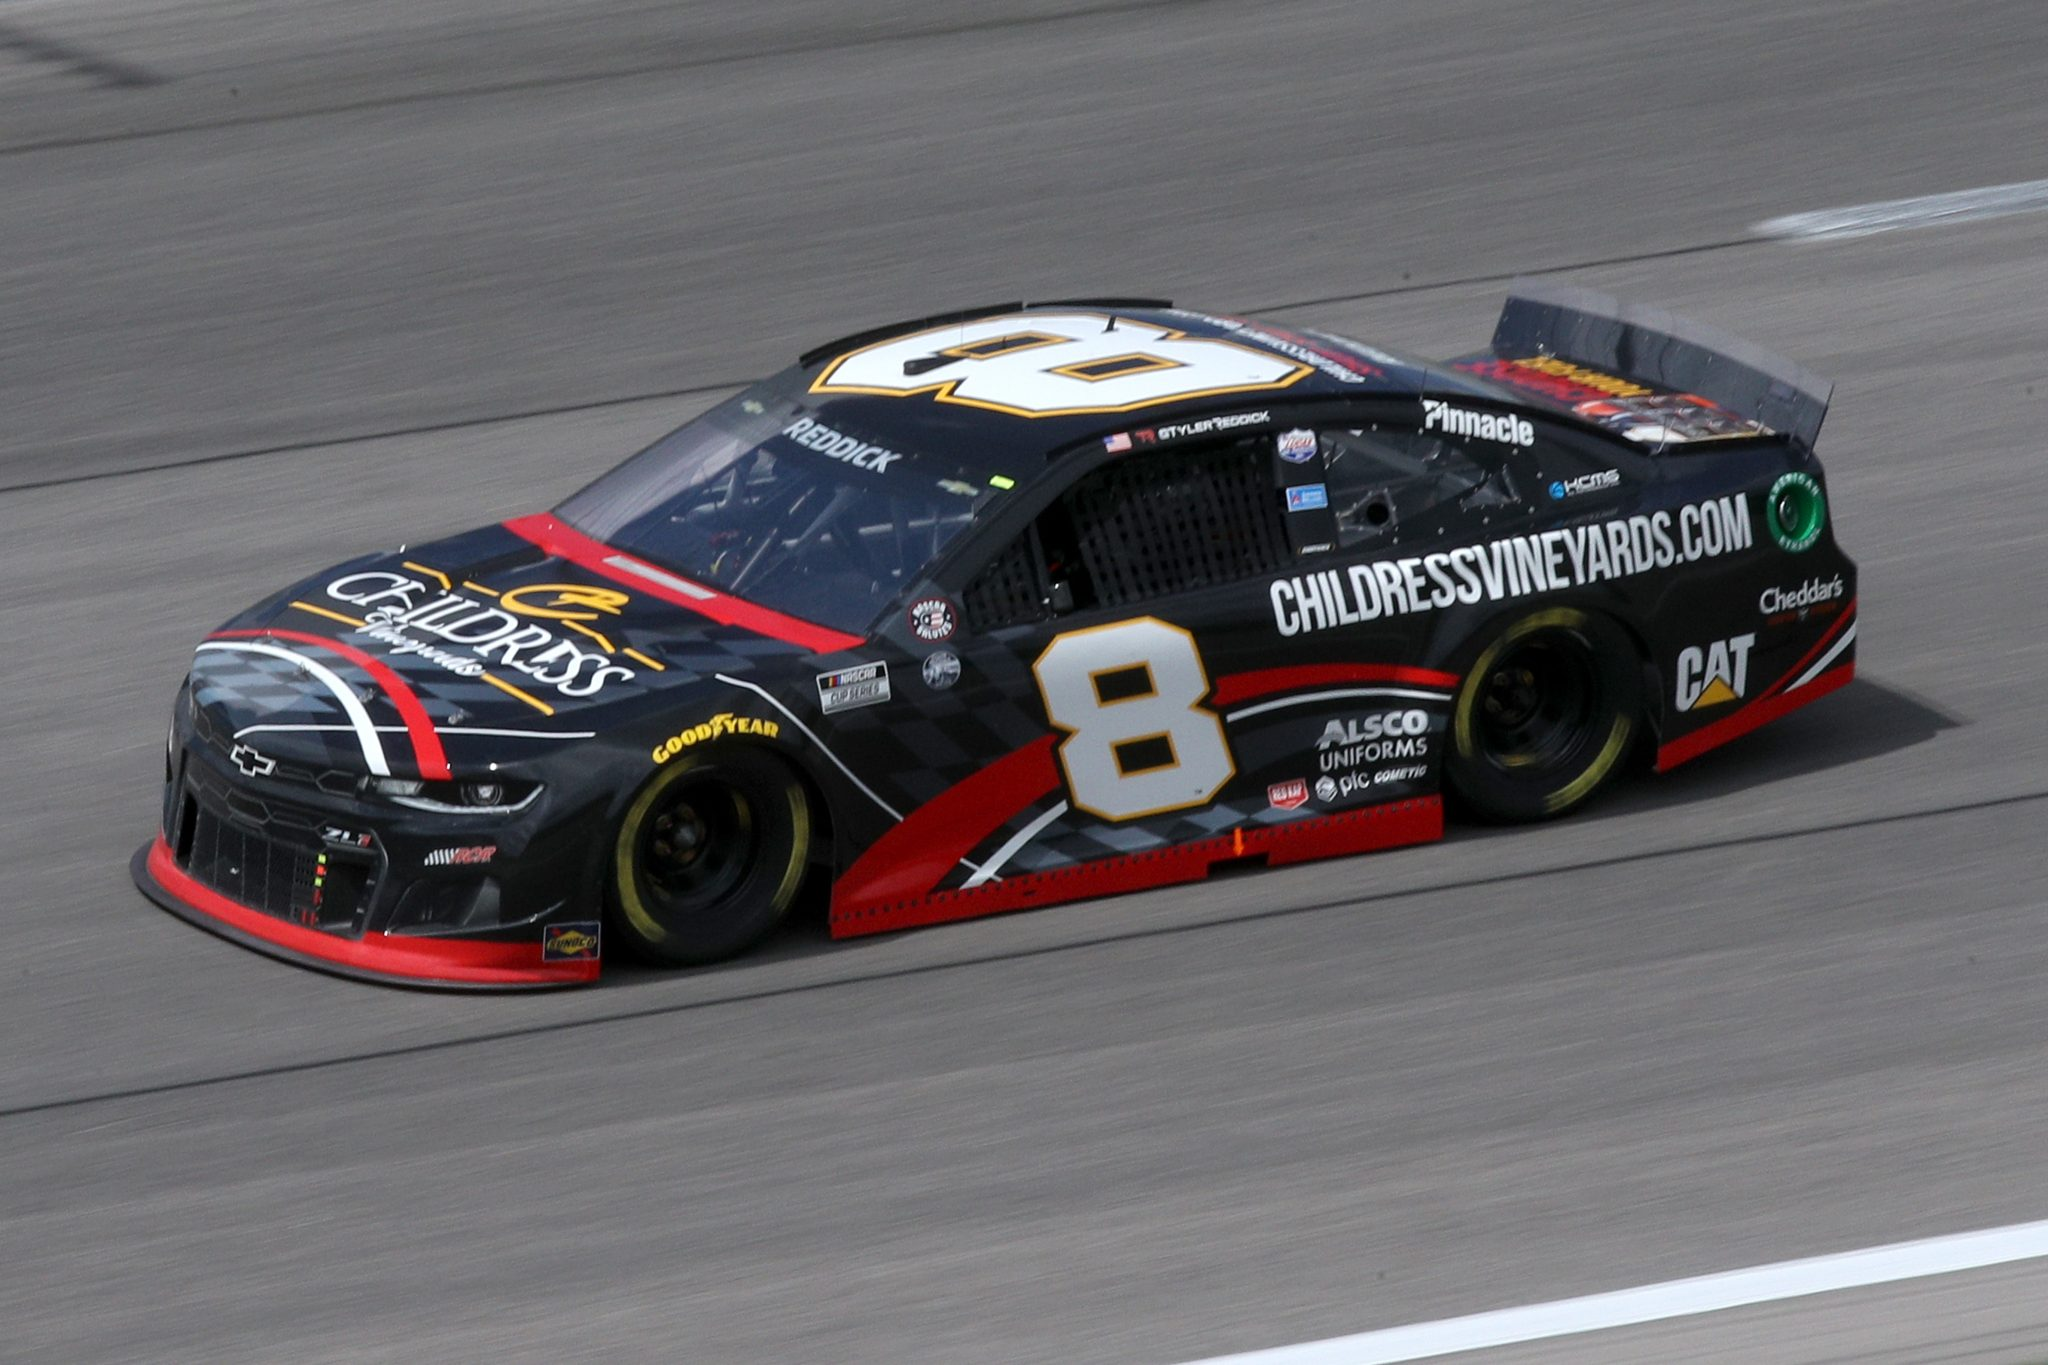 KANSAS CITY, KANSAS - MAY 02: Tyler Reddick, driver of the #8 Childress Vineyards Chevrolet, drives during the NASCAR Cup Series Buschy McBusch Race 400 at Kansas Speedway on May 02, 2021 in Kansas City, Kansas. (Photo by Sean Gardner/Getty Images) | Getty Images